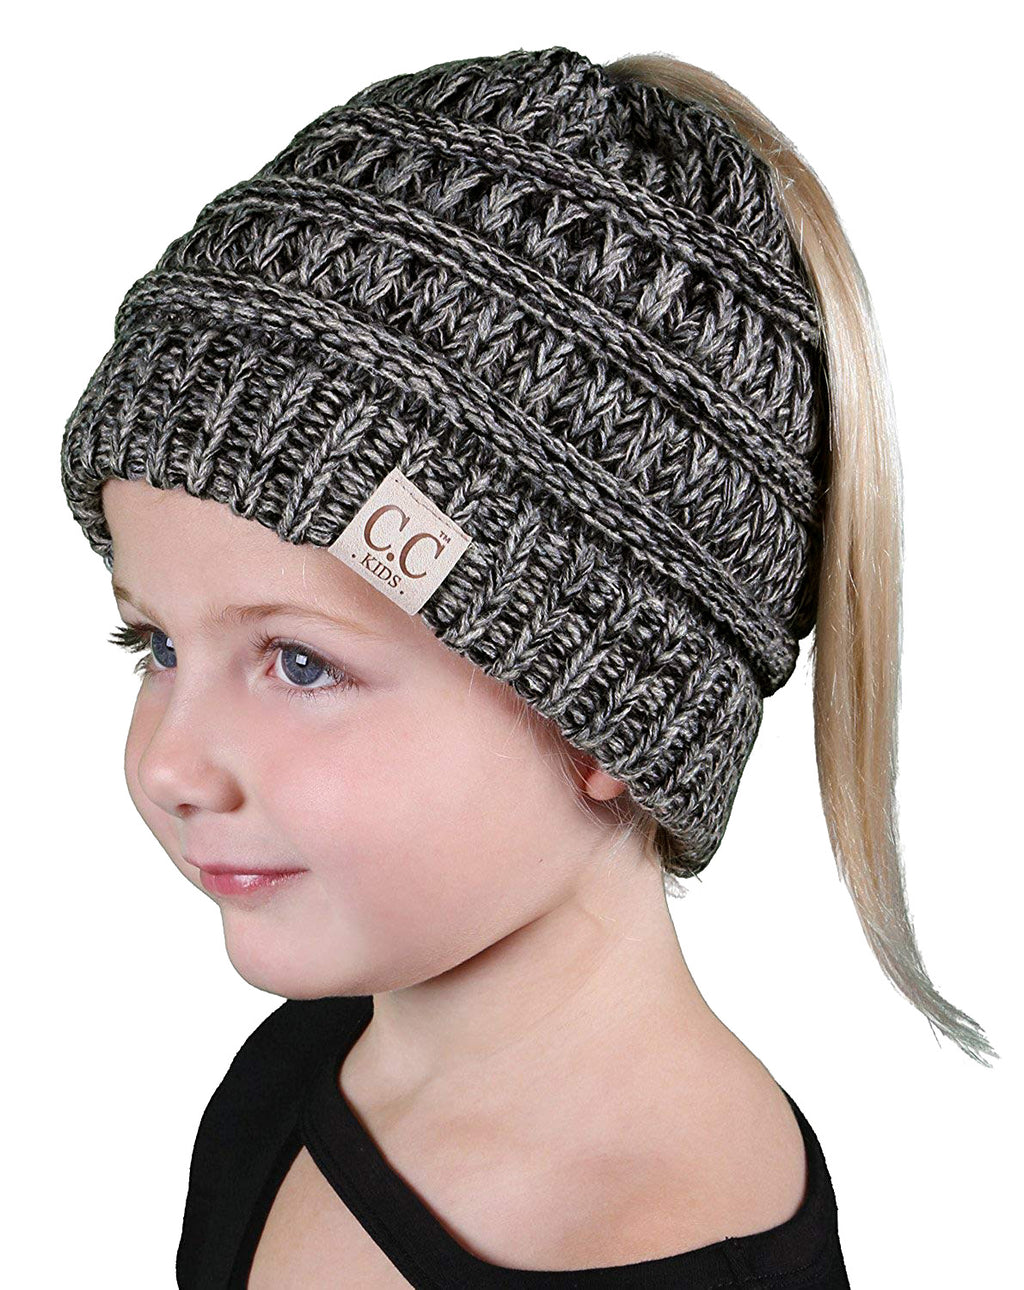 C.C. Kid's BeanieTail Ponytail Cable Knit Beanie - 4 Tone